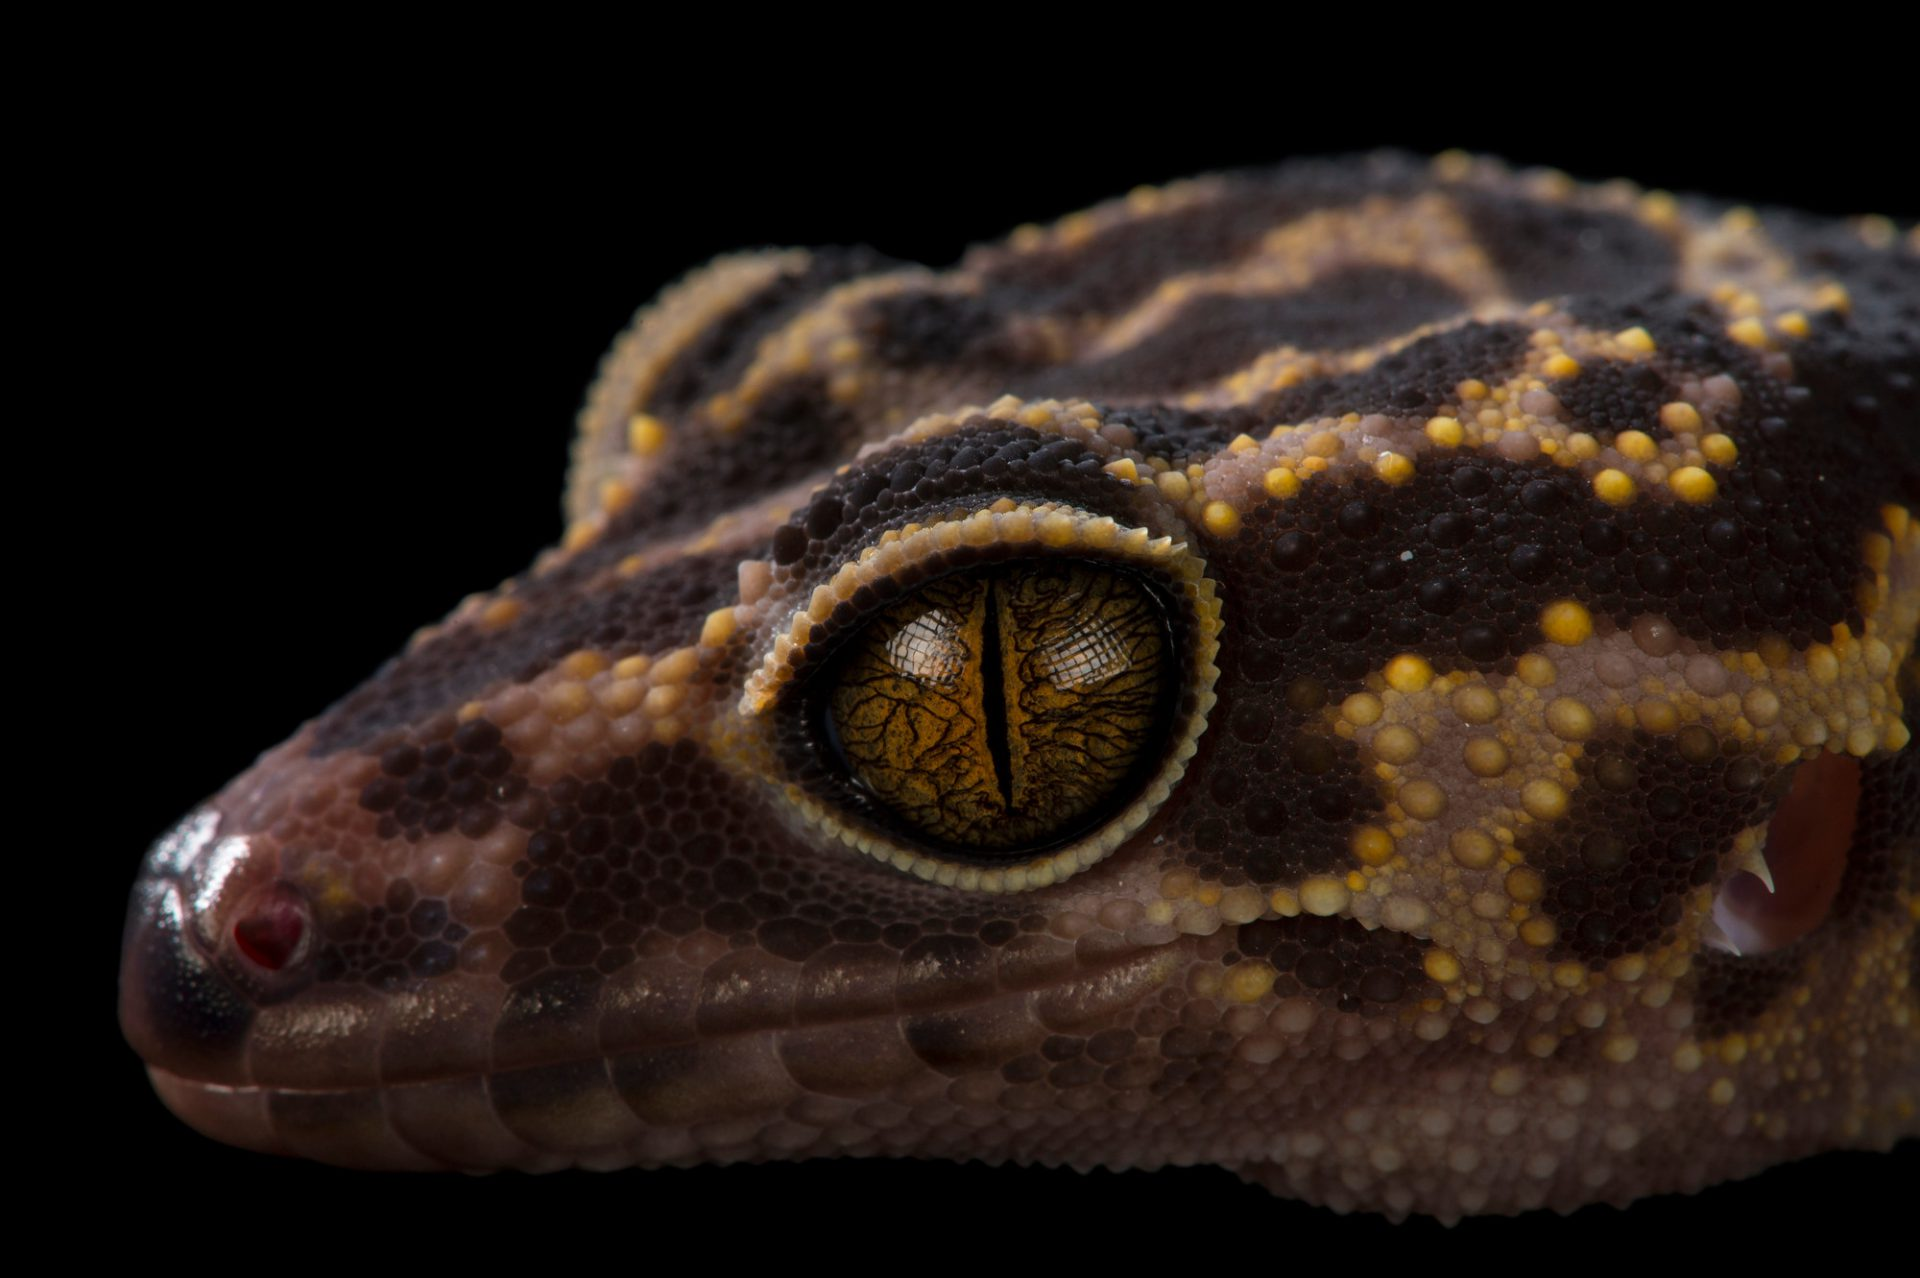 Picture of a cat ba cave gecko (Goniurosaurus catbaensis) at the St. Louis Zoo.